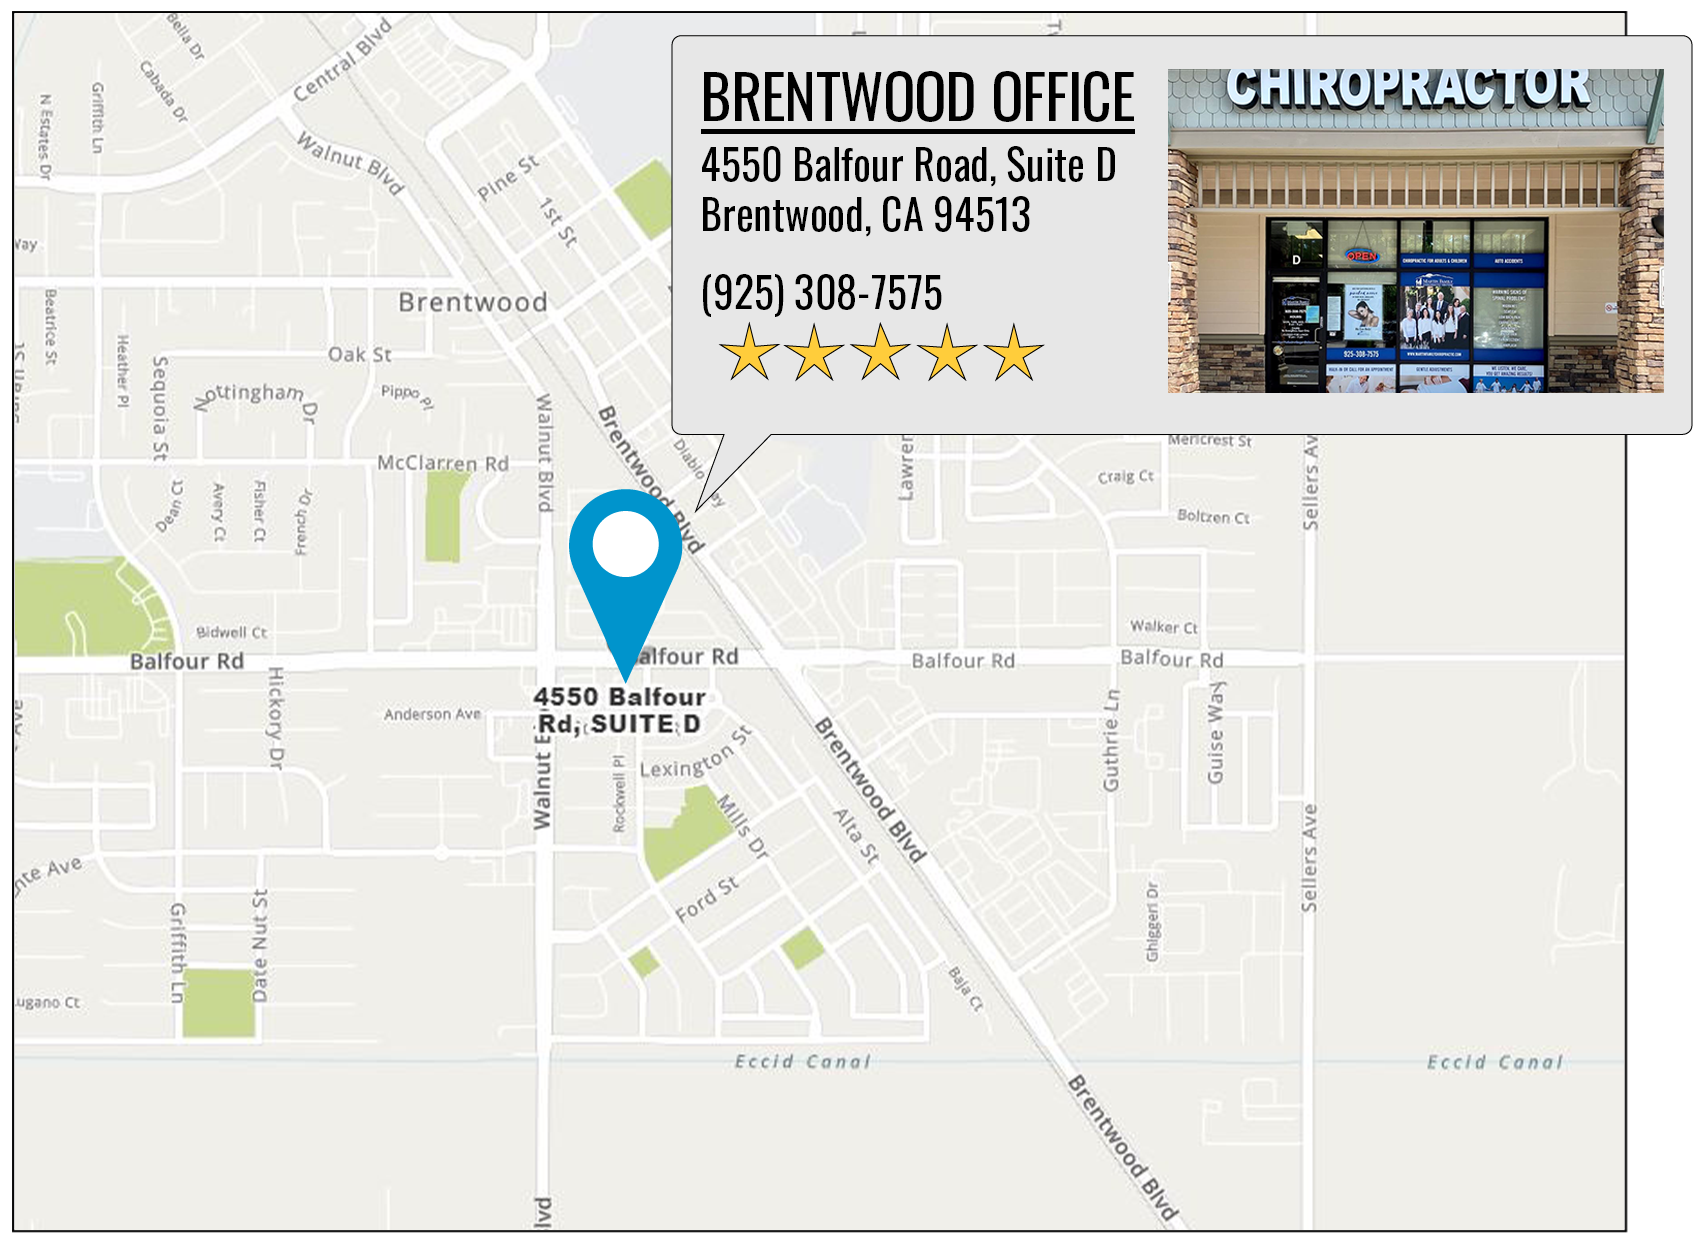 Martin Family Chiropractic Centers's location on google map